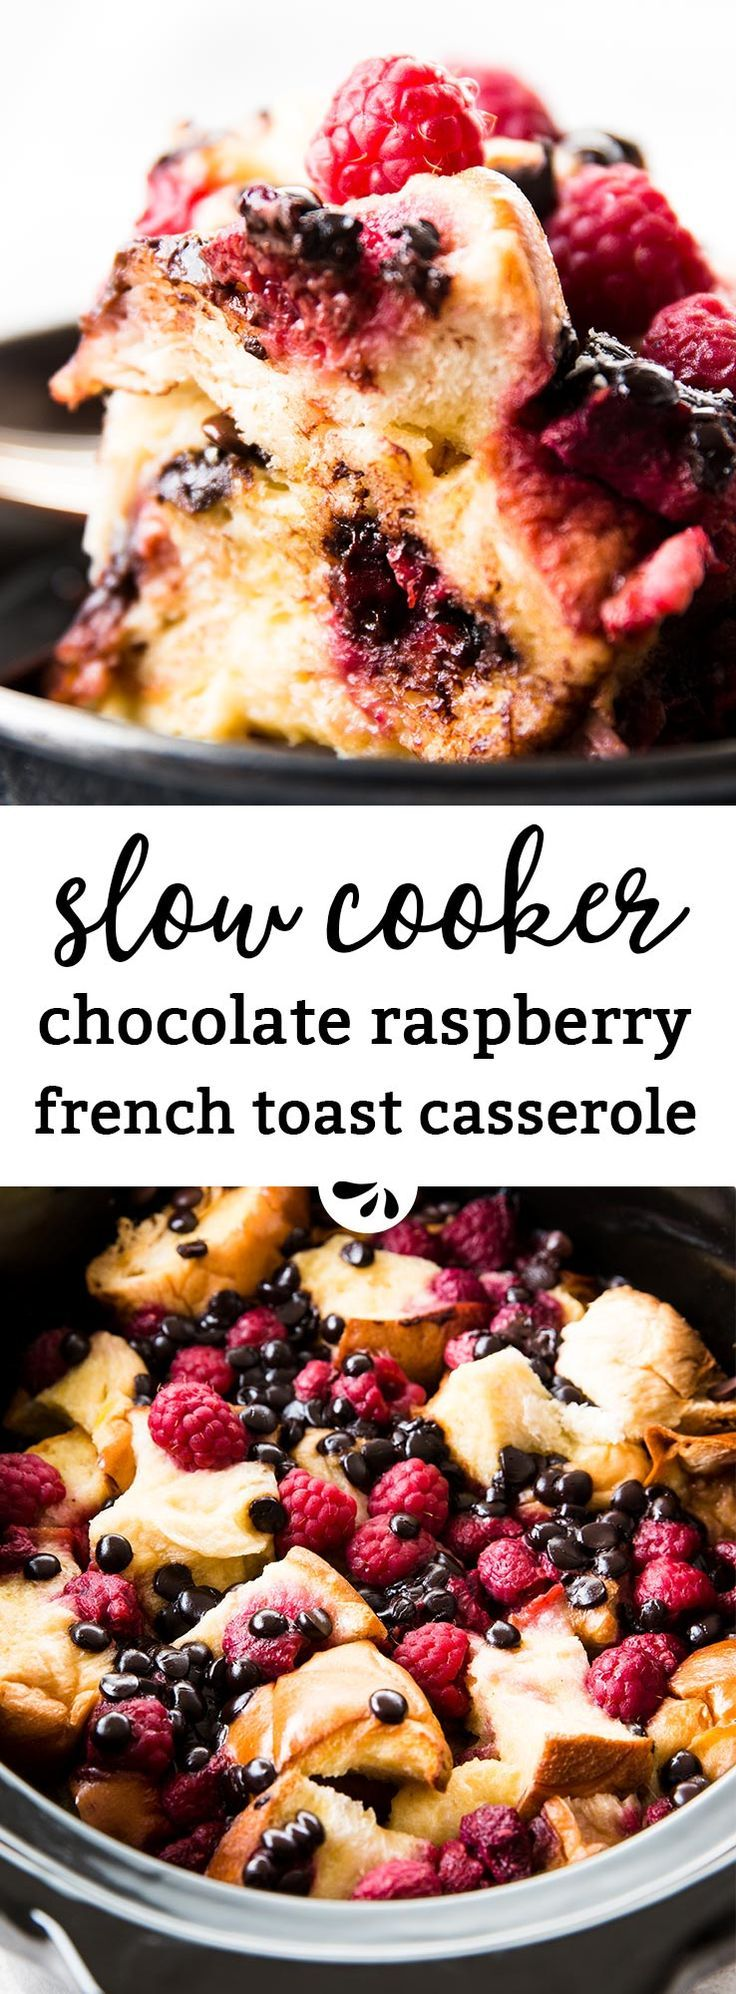 This Crockpot Raspberry Chocolate Chip French Toast Casserole is a simple brunch dish that feels extra special. So decadent with the chocolate and raspberries! (Slow Cooker Bake Oatmeal)